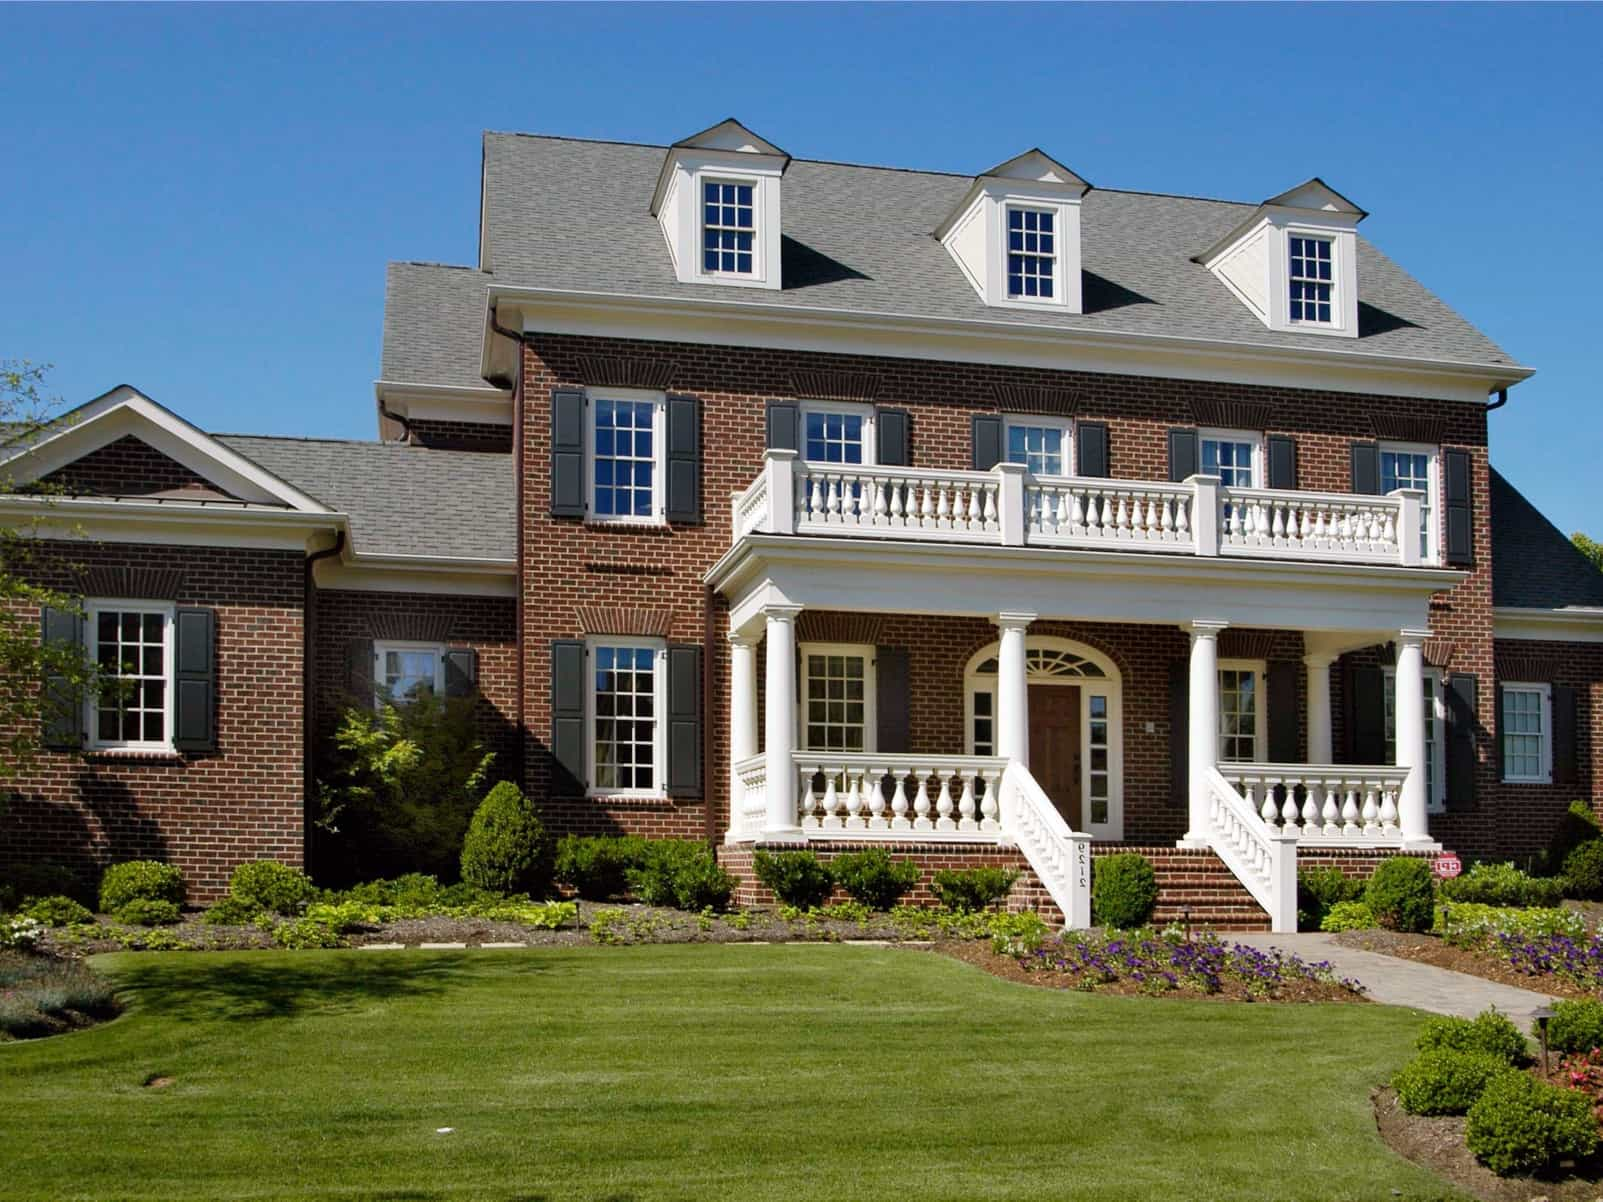 Featured Image of Brick House Architecture With White Pillars For Front Porch And Balcony